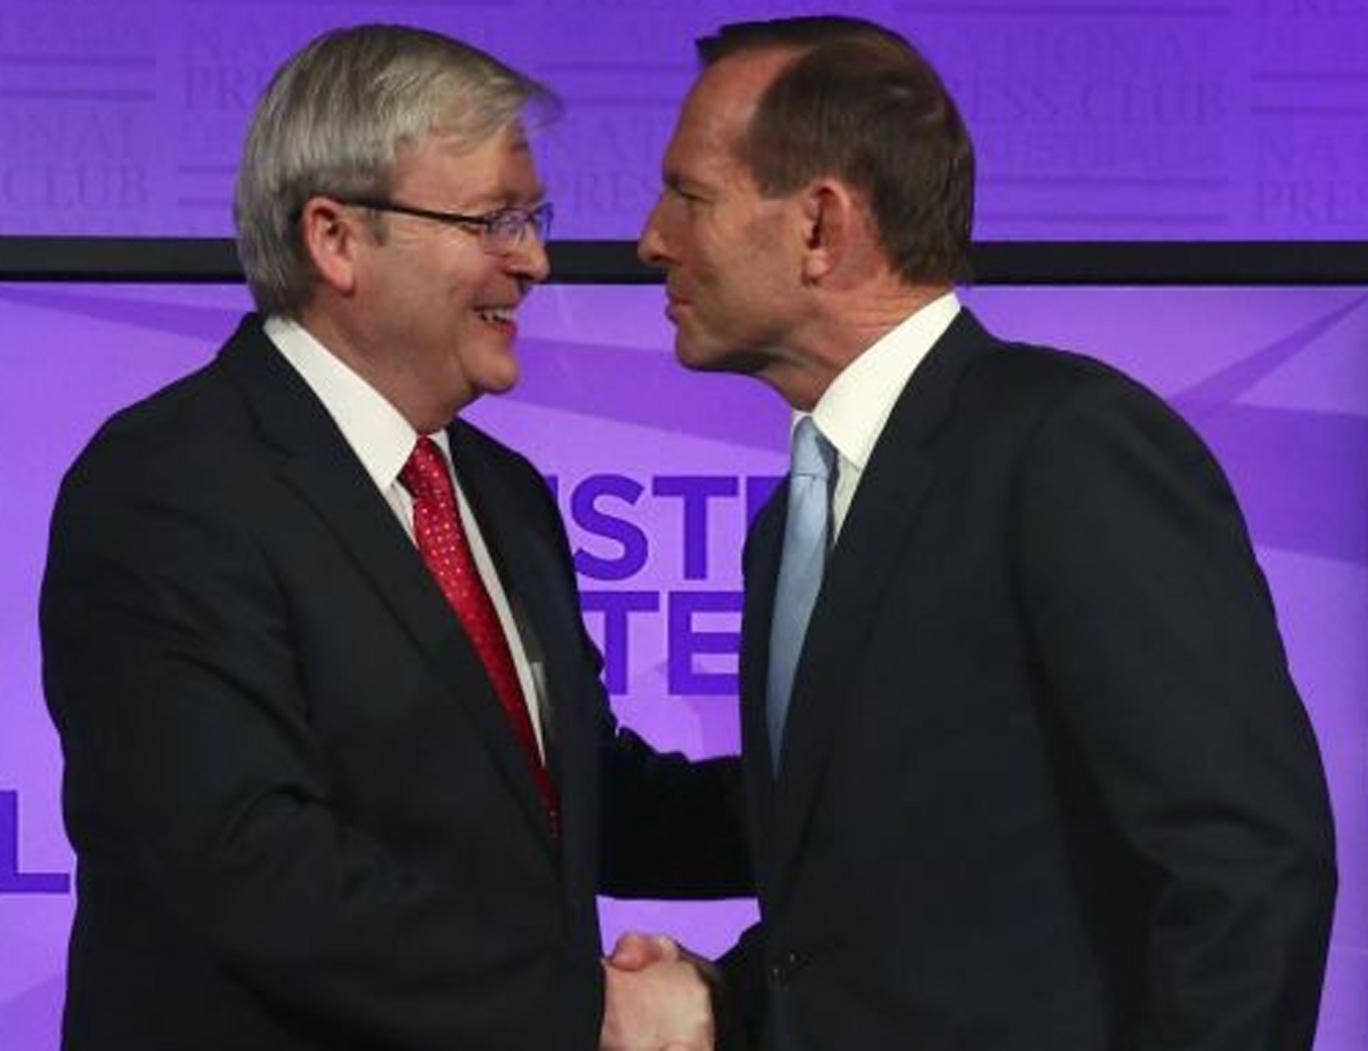 Kevin Rudd (left) and Tony Abbott shake hands before the debate